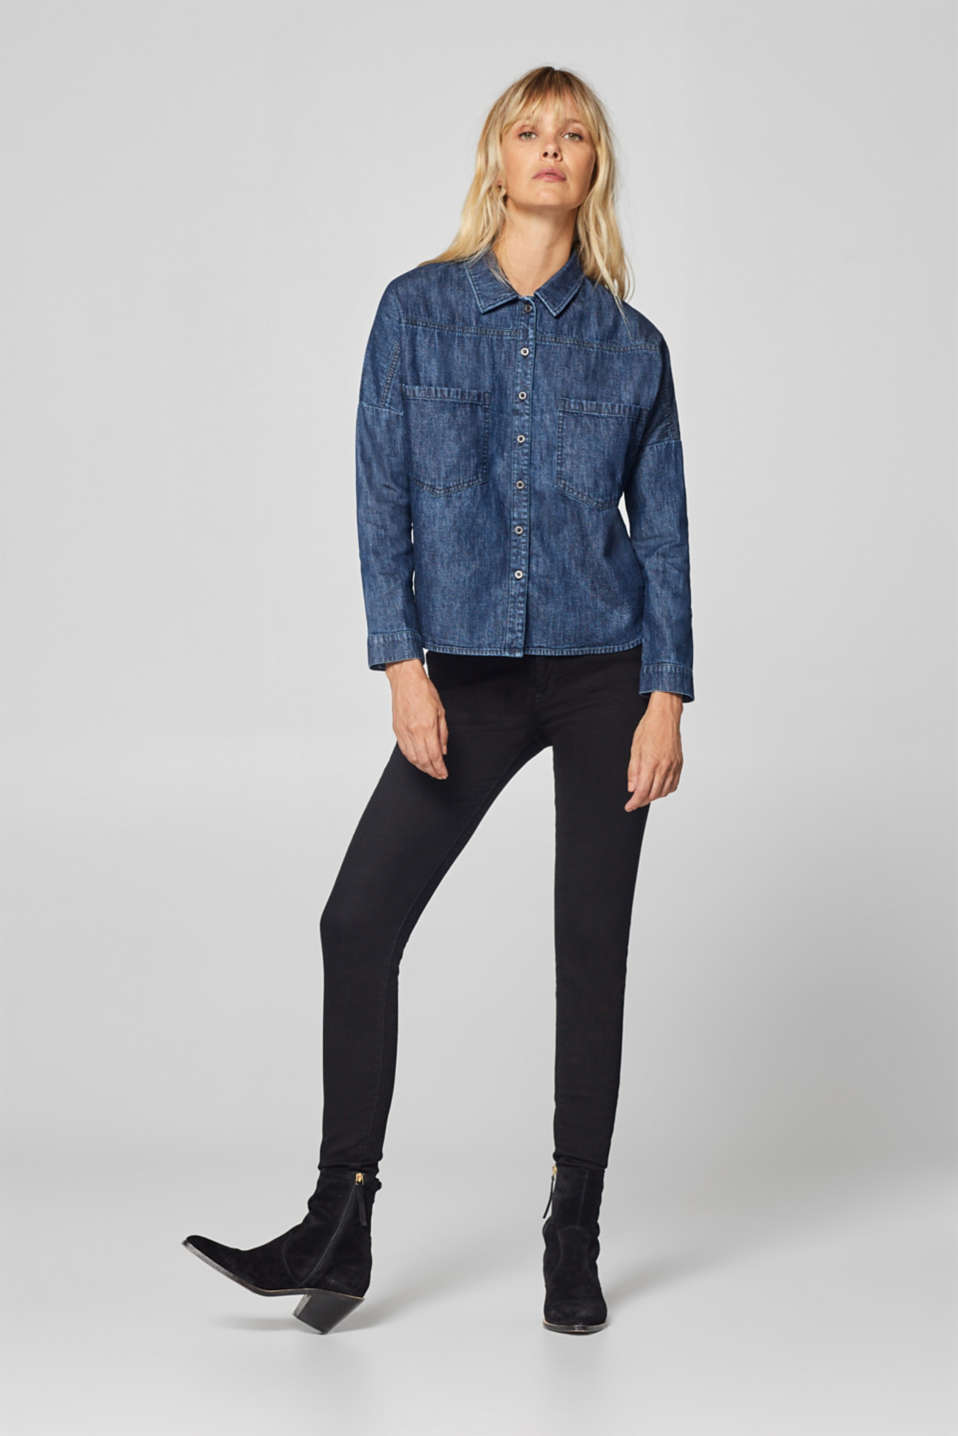 edc - Denim blouse with a high-low hem, 100% cotton